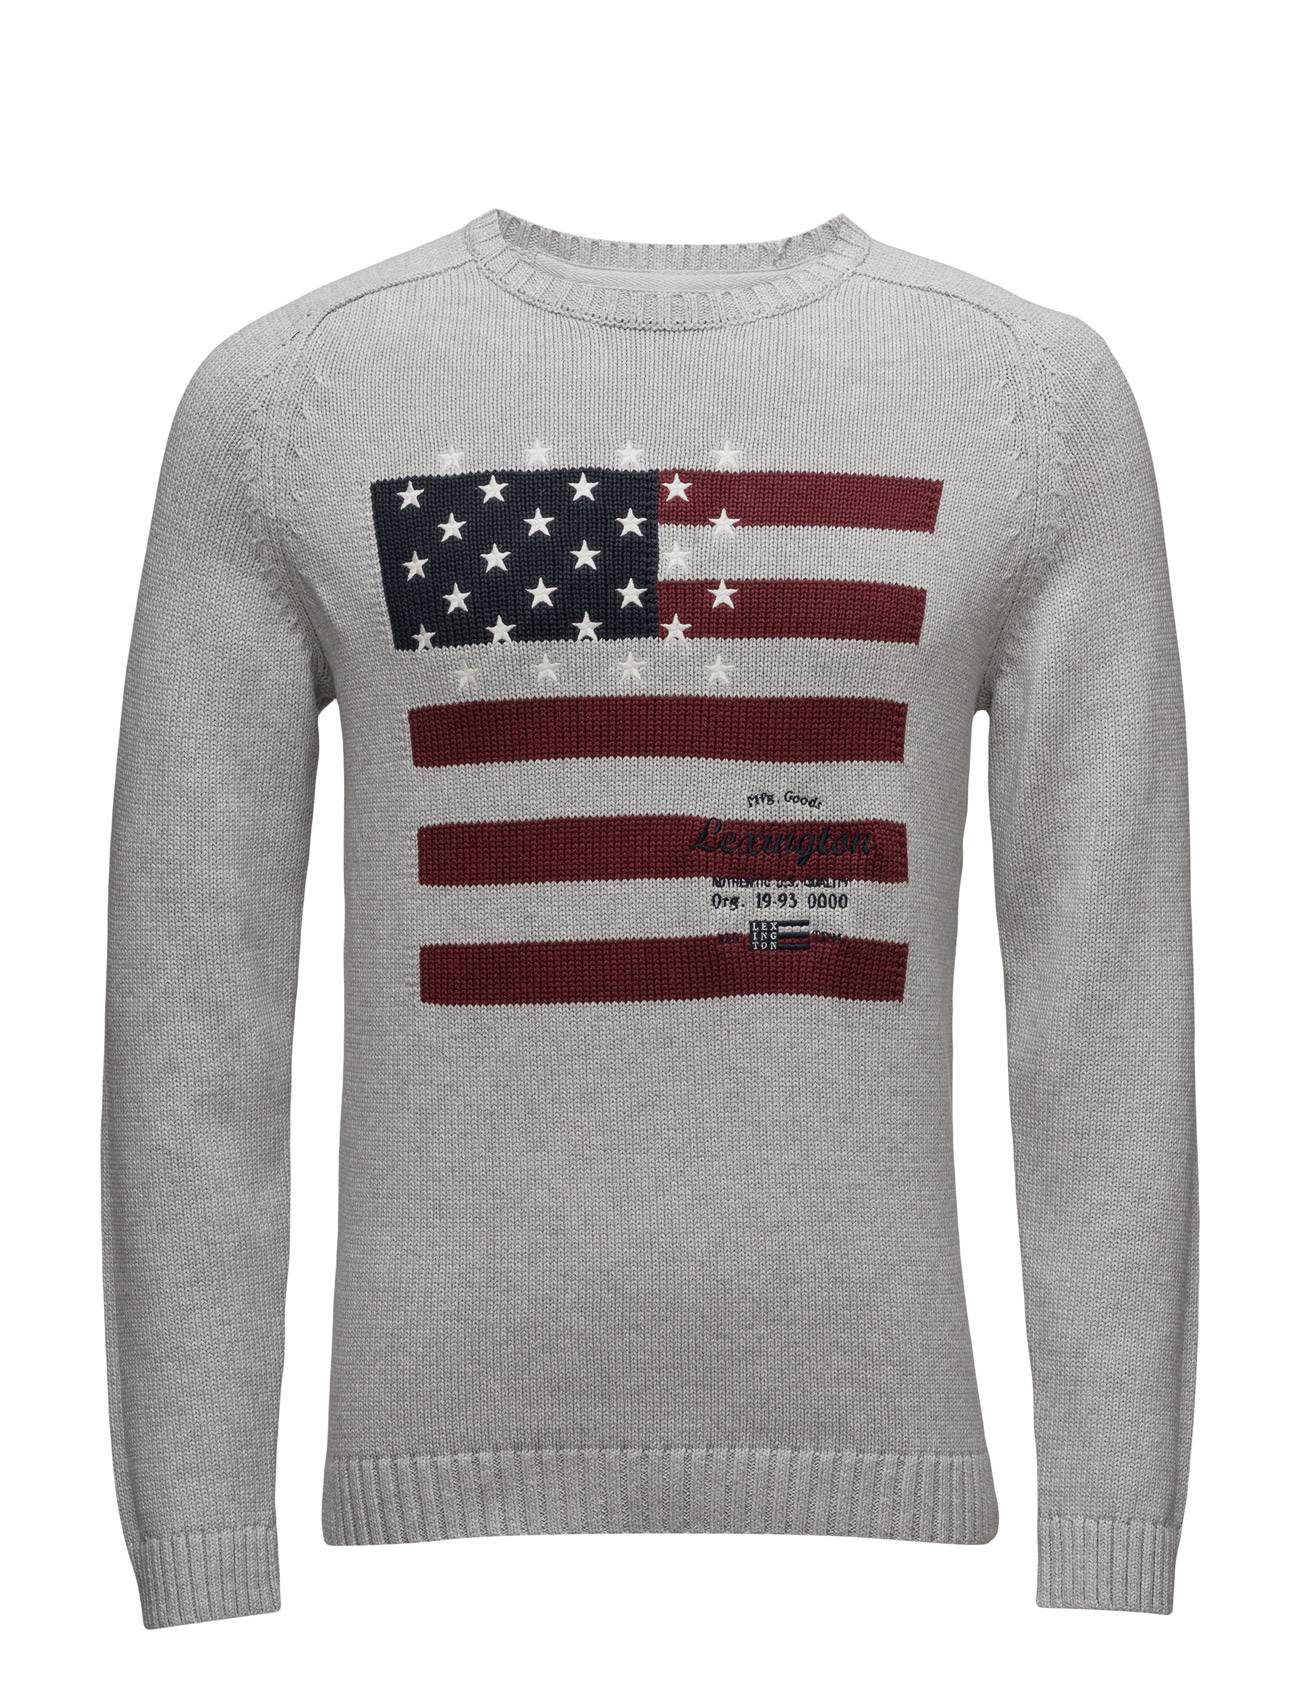 Lexington Company Dylan Sweater